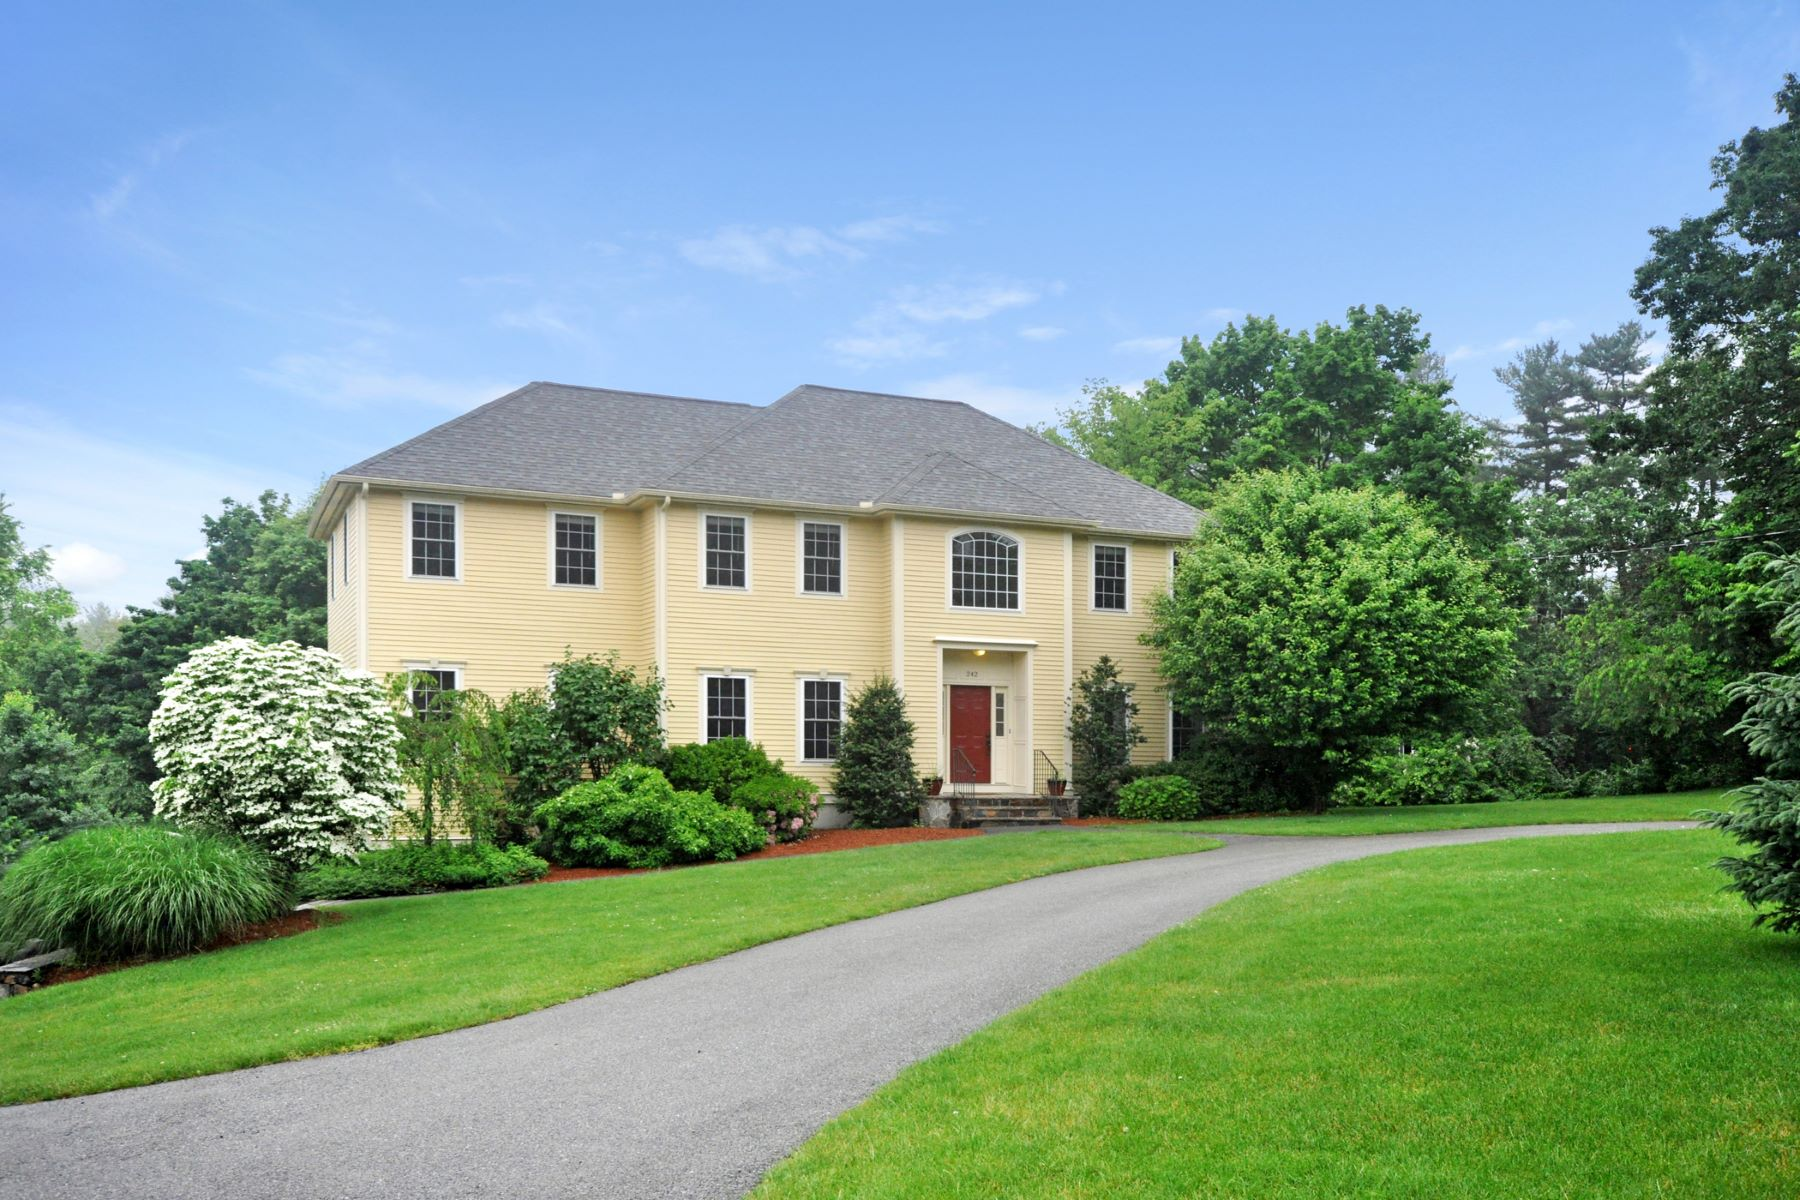 Single Family Homes for Active at 242 Old Billerica Road, Bedford 242 Old Billerica Rd Bedford, Massachusetts 01730 United States